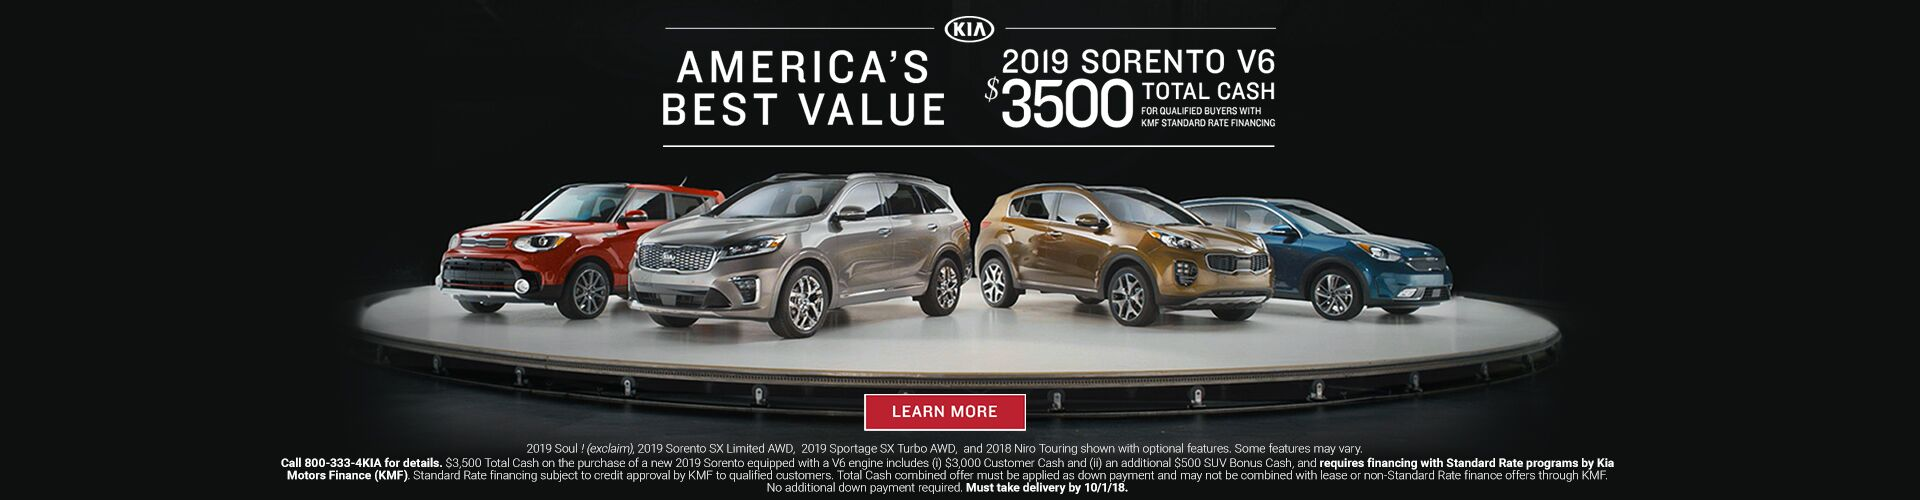 America's Best Value 2019 Sorento Kia of St. Cloud